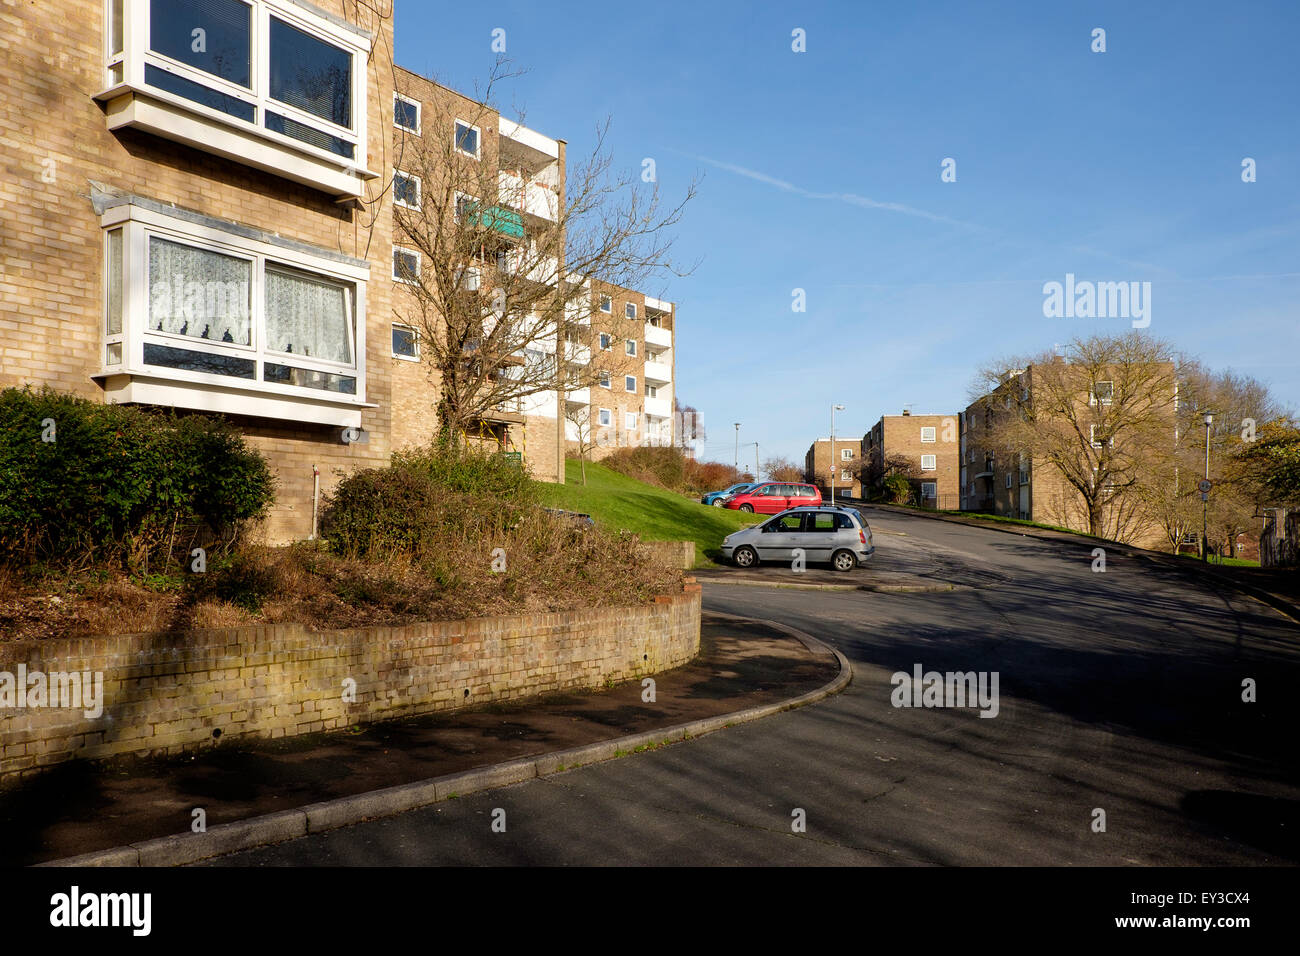 The Bates Estate, a local authority housing estate at Moulsecoomb, Brighton - Stock Image